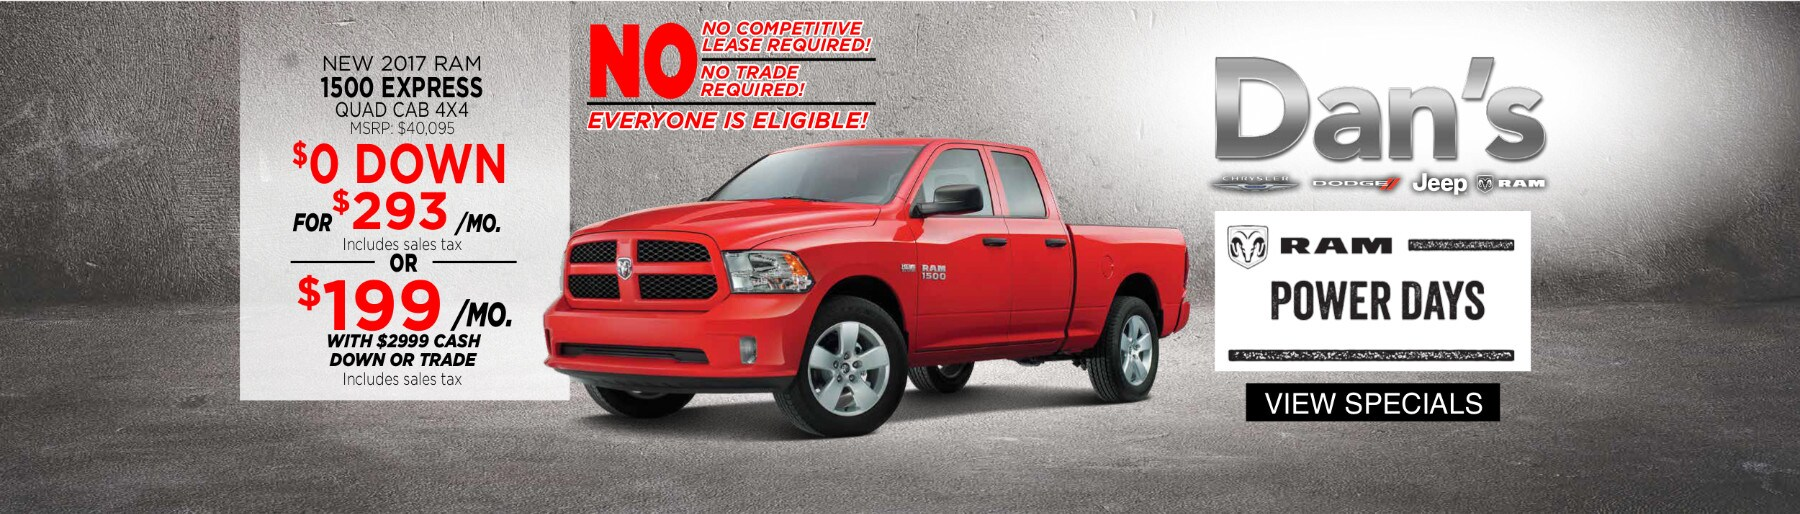 Ram 1500 Special Deal in Westborough, MA